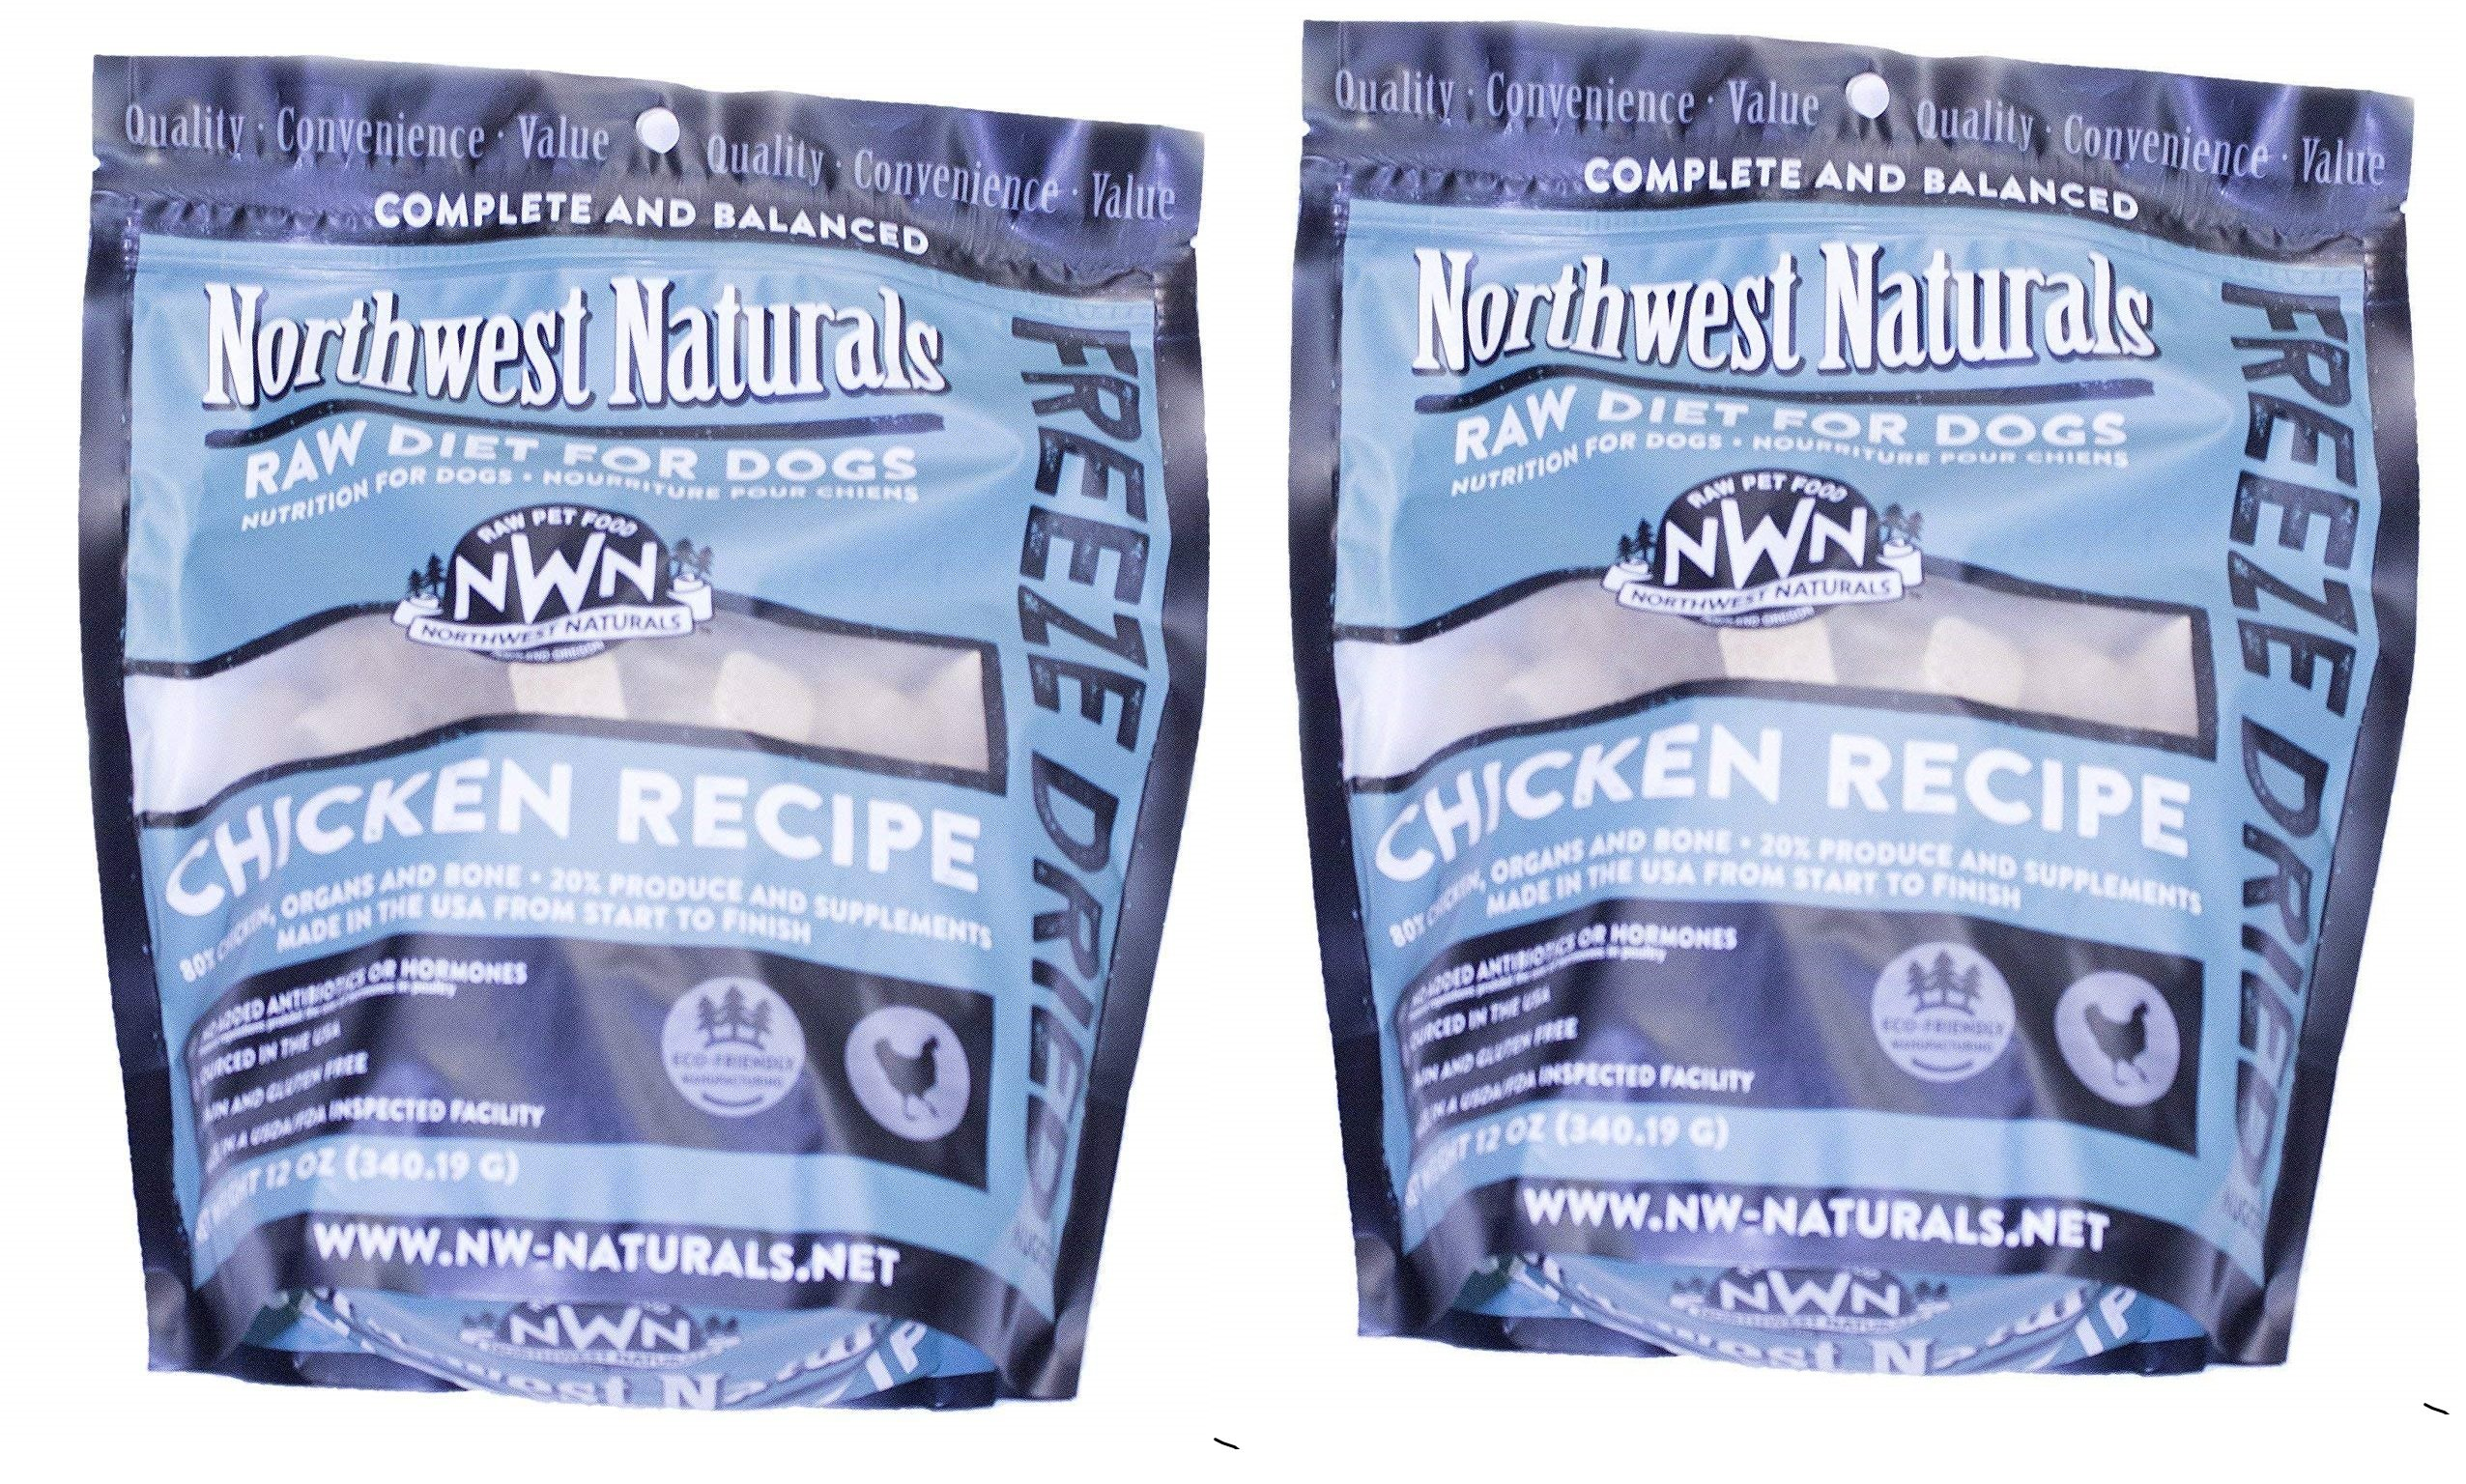 Northwest Naturals (2 Pack Raw Diet Freeze Dried Nuggets - Dinner Dogs (Chicken) by Northwest Naturals